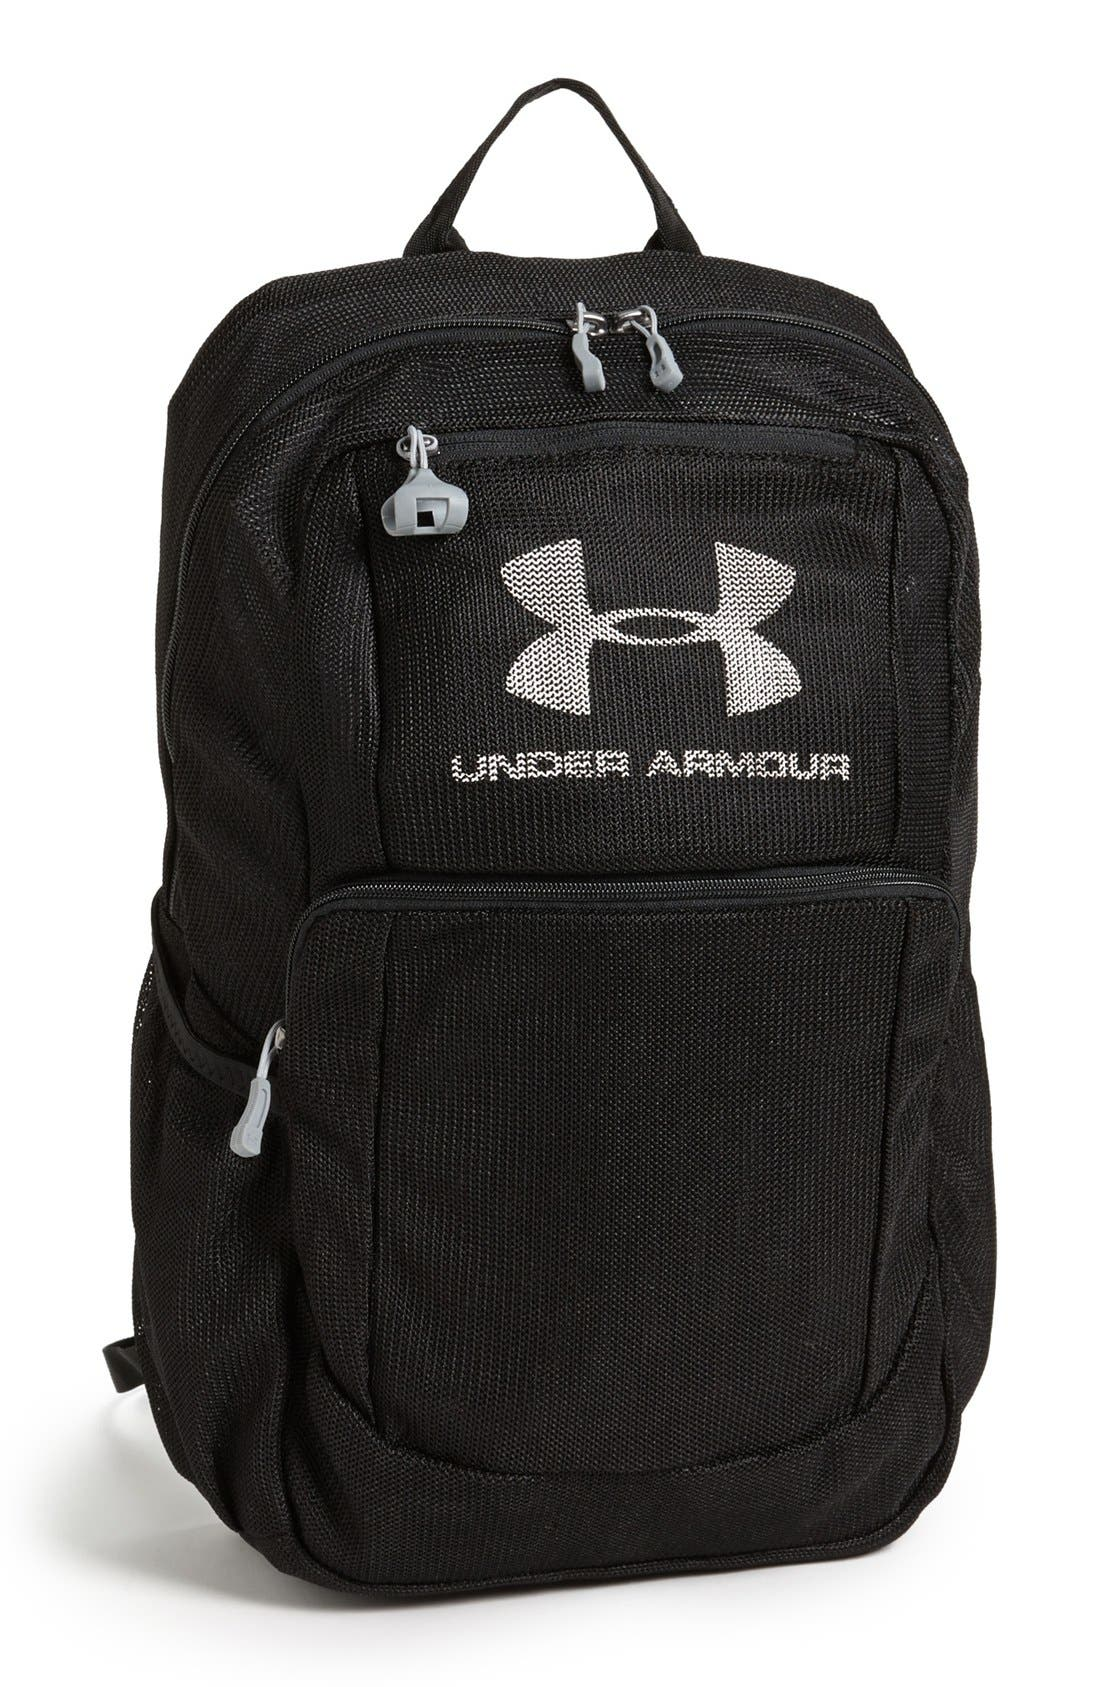 53d08d4a837c under armour mesh backpack cheap   OFF75% The Largest Catalog Discounts